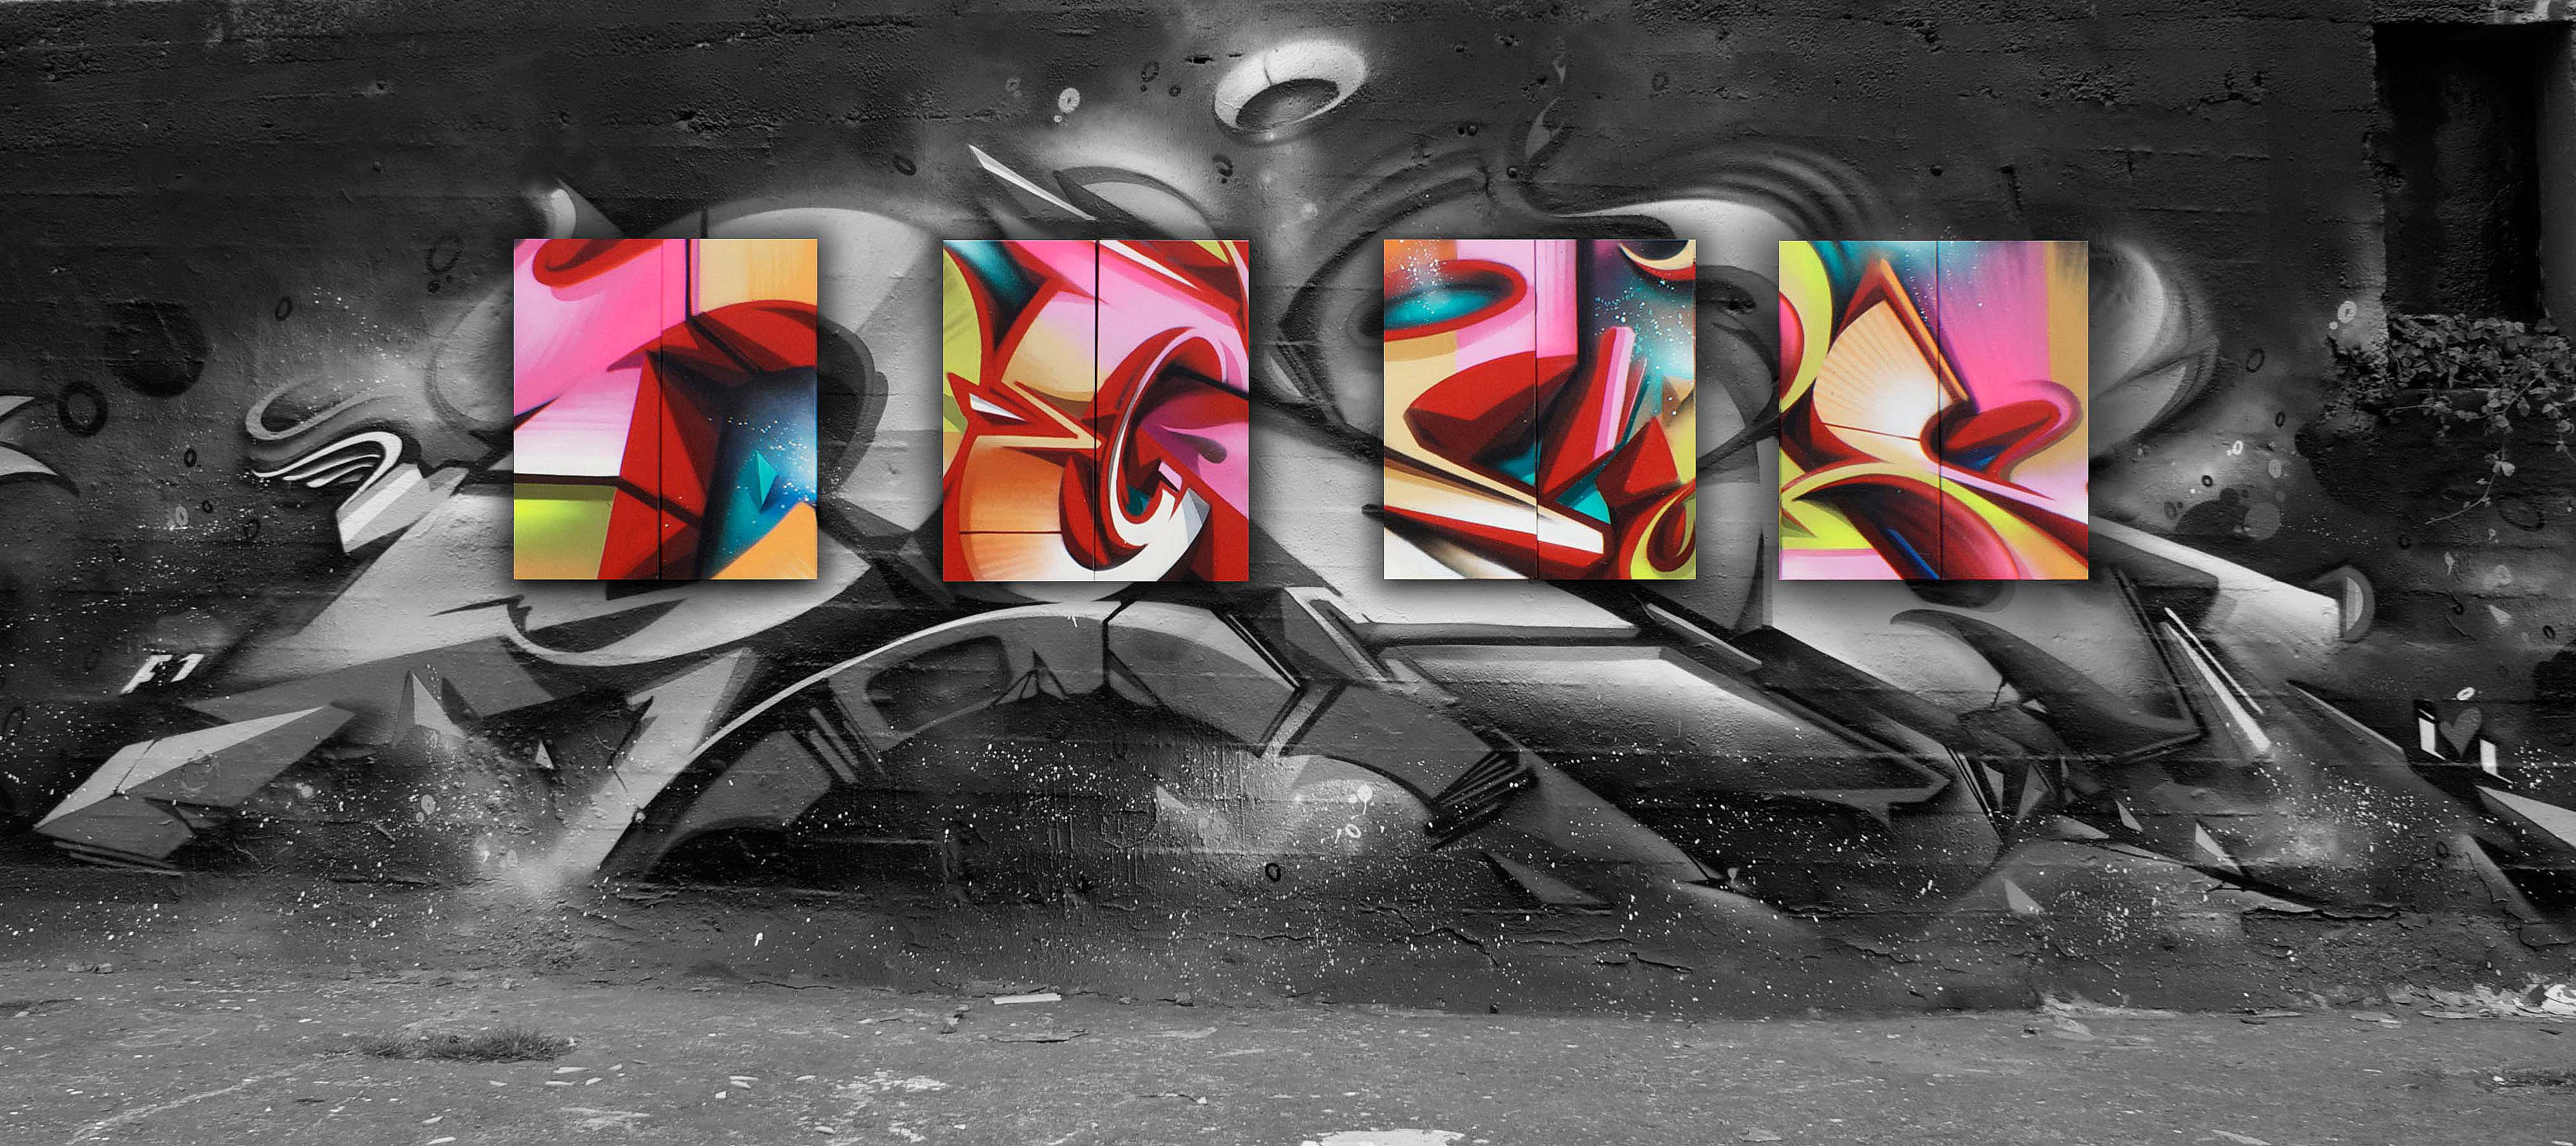 A work by Does - Endless perspectives amsterdam the netherlands